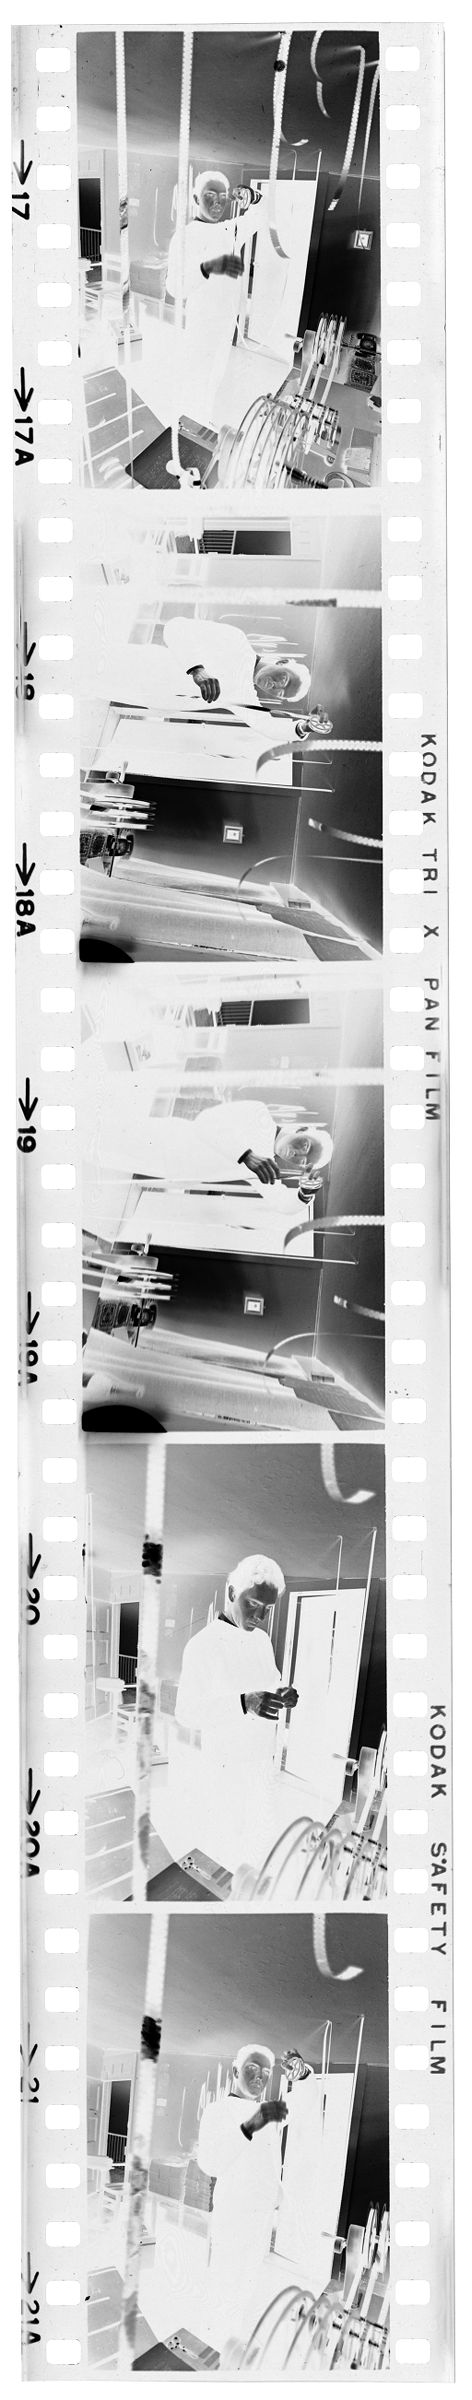 Untitled (Photographer Cutting And Hanging Film)